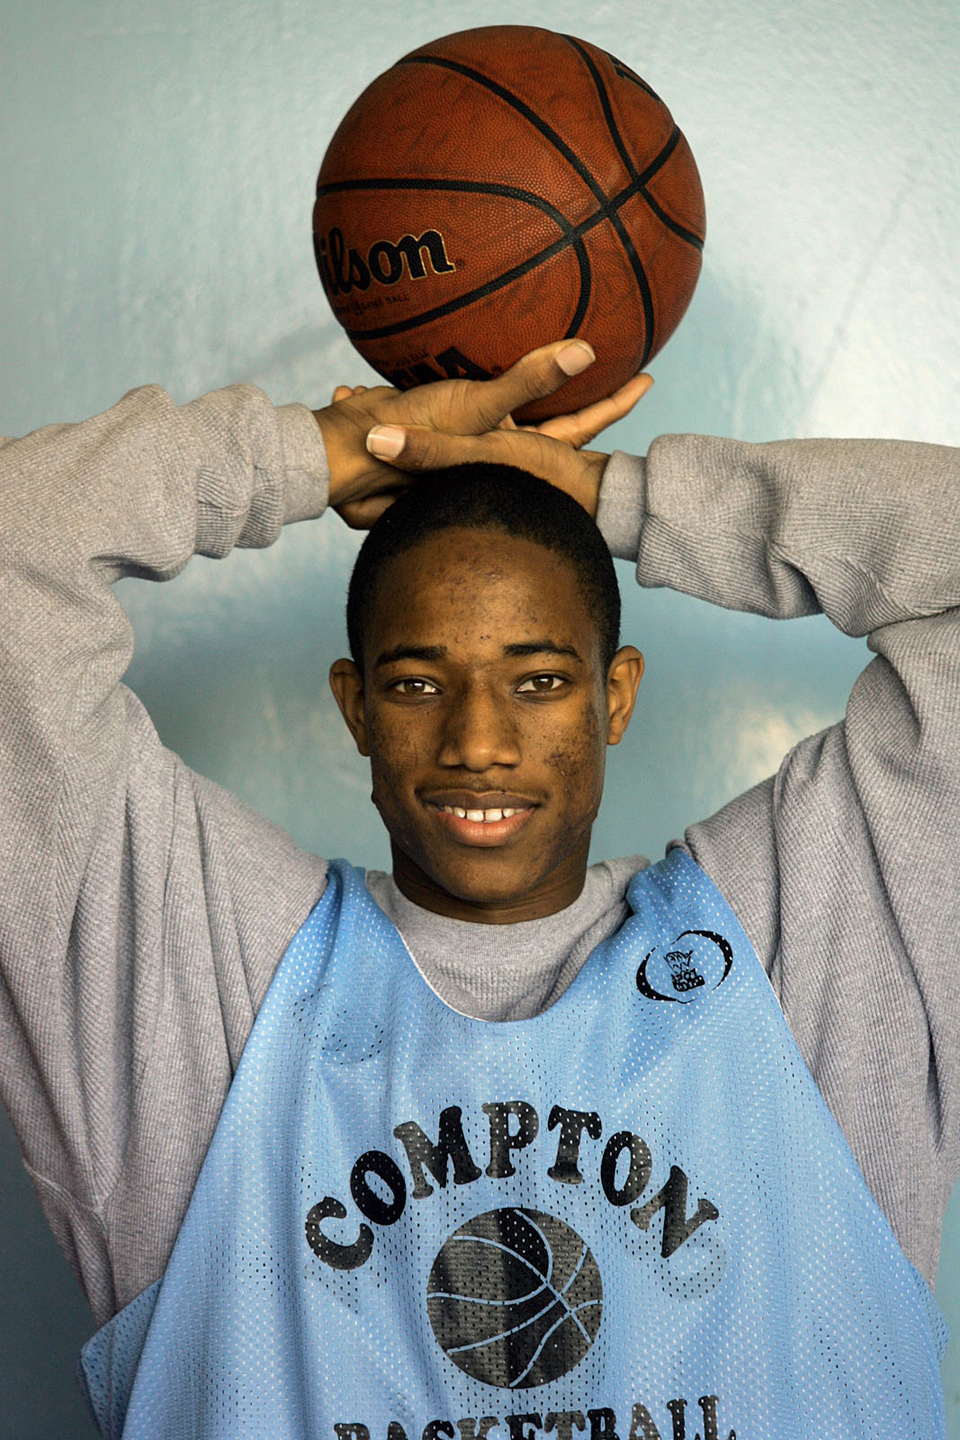 "Demar Derozan is a 6'5"" junior at Compton High. He is one of the most athletically gifted basketball players in the area with great leaping ability. He is photographed on 12/20/06 at the school. (Photo by Gary Friedman/Los Angeles Times via Getty Images)"